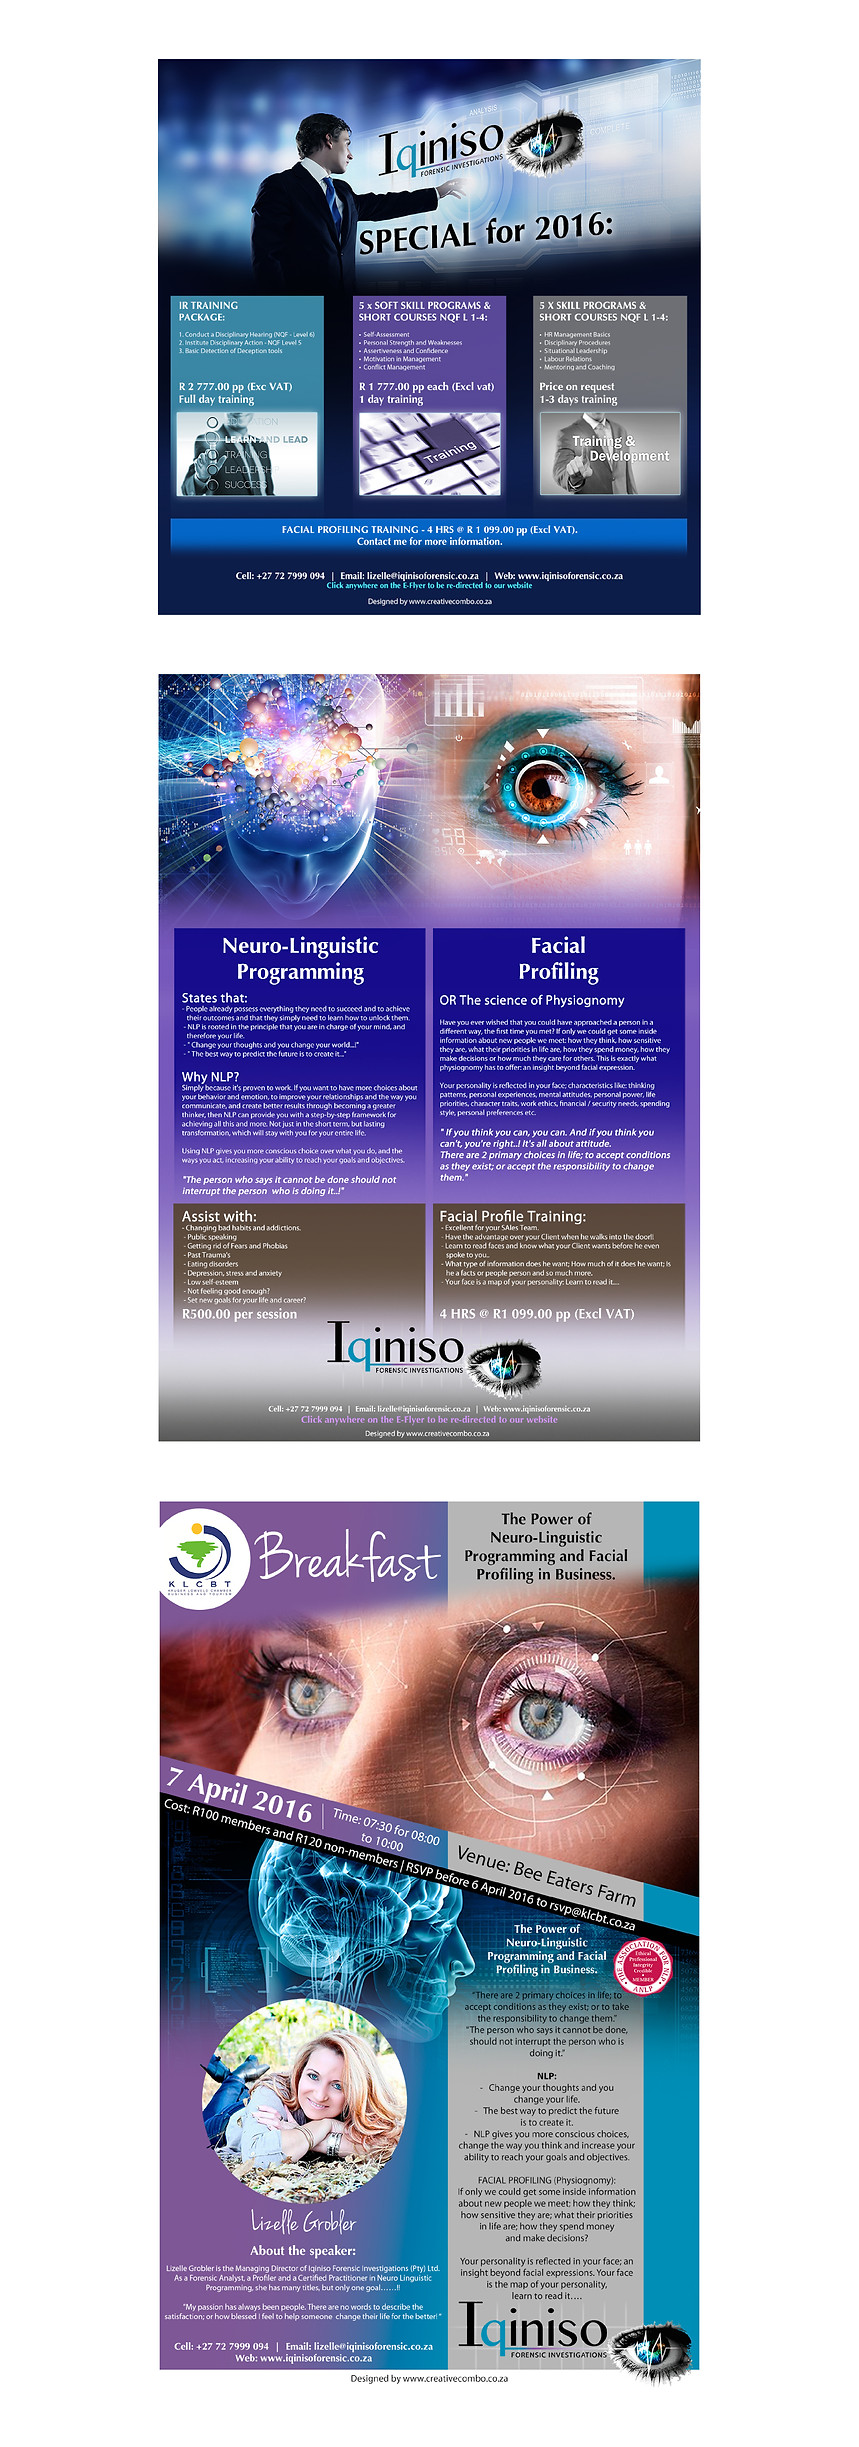 Iqiniso Forensic Investigations Marketing Material Designs